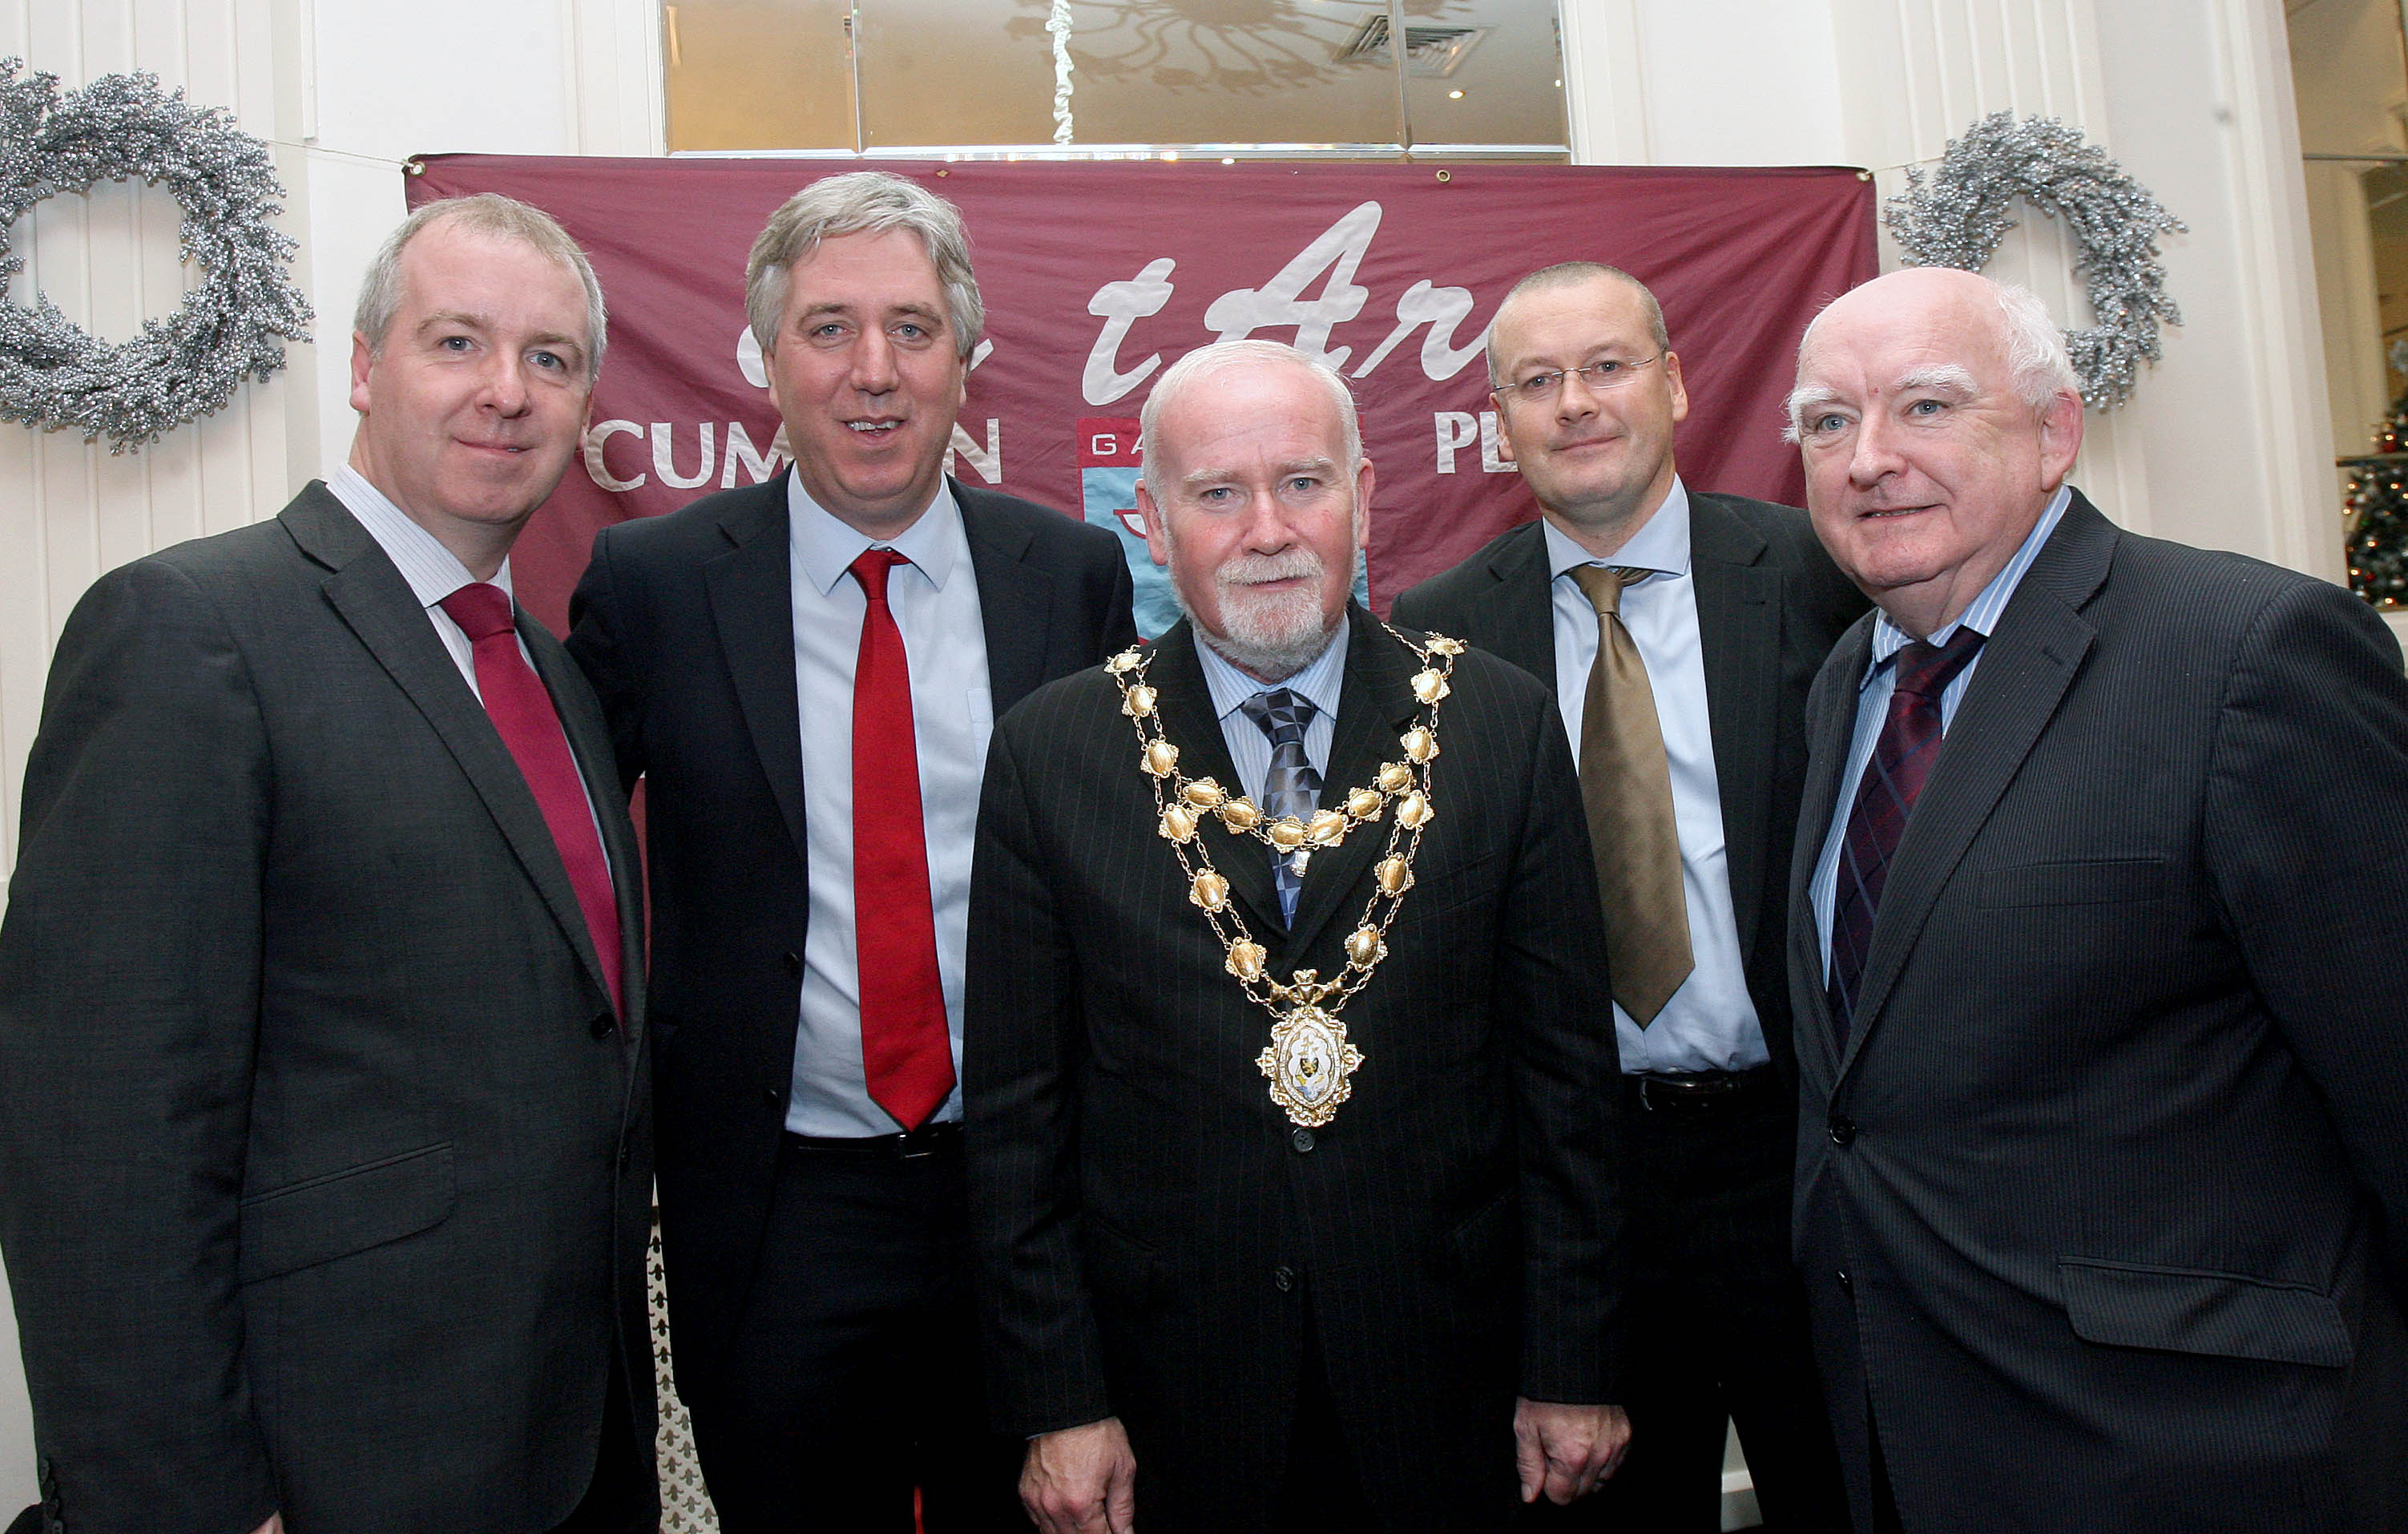 Deputy Brian Walsh, TD, JohnDelaney, CEO, Football Association of Ireland, Mayor of Galway, Councillor Donal Lyons, Tommy Dunne, Manager, Galway United and Councillor Declan McDonnell, at the launch of the Galway Soccer Co-op supporting Galway United at Hotel Meyrick.